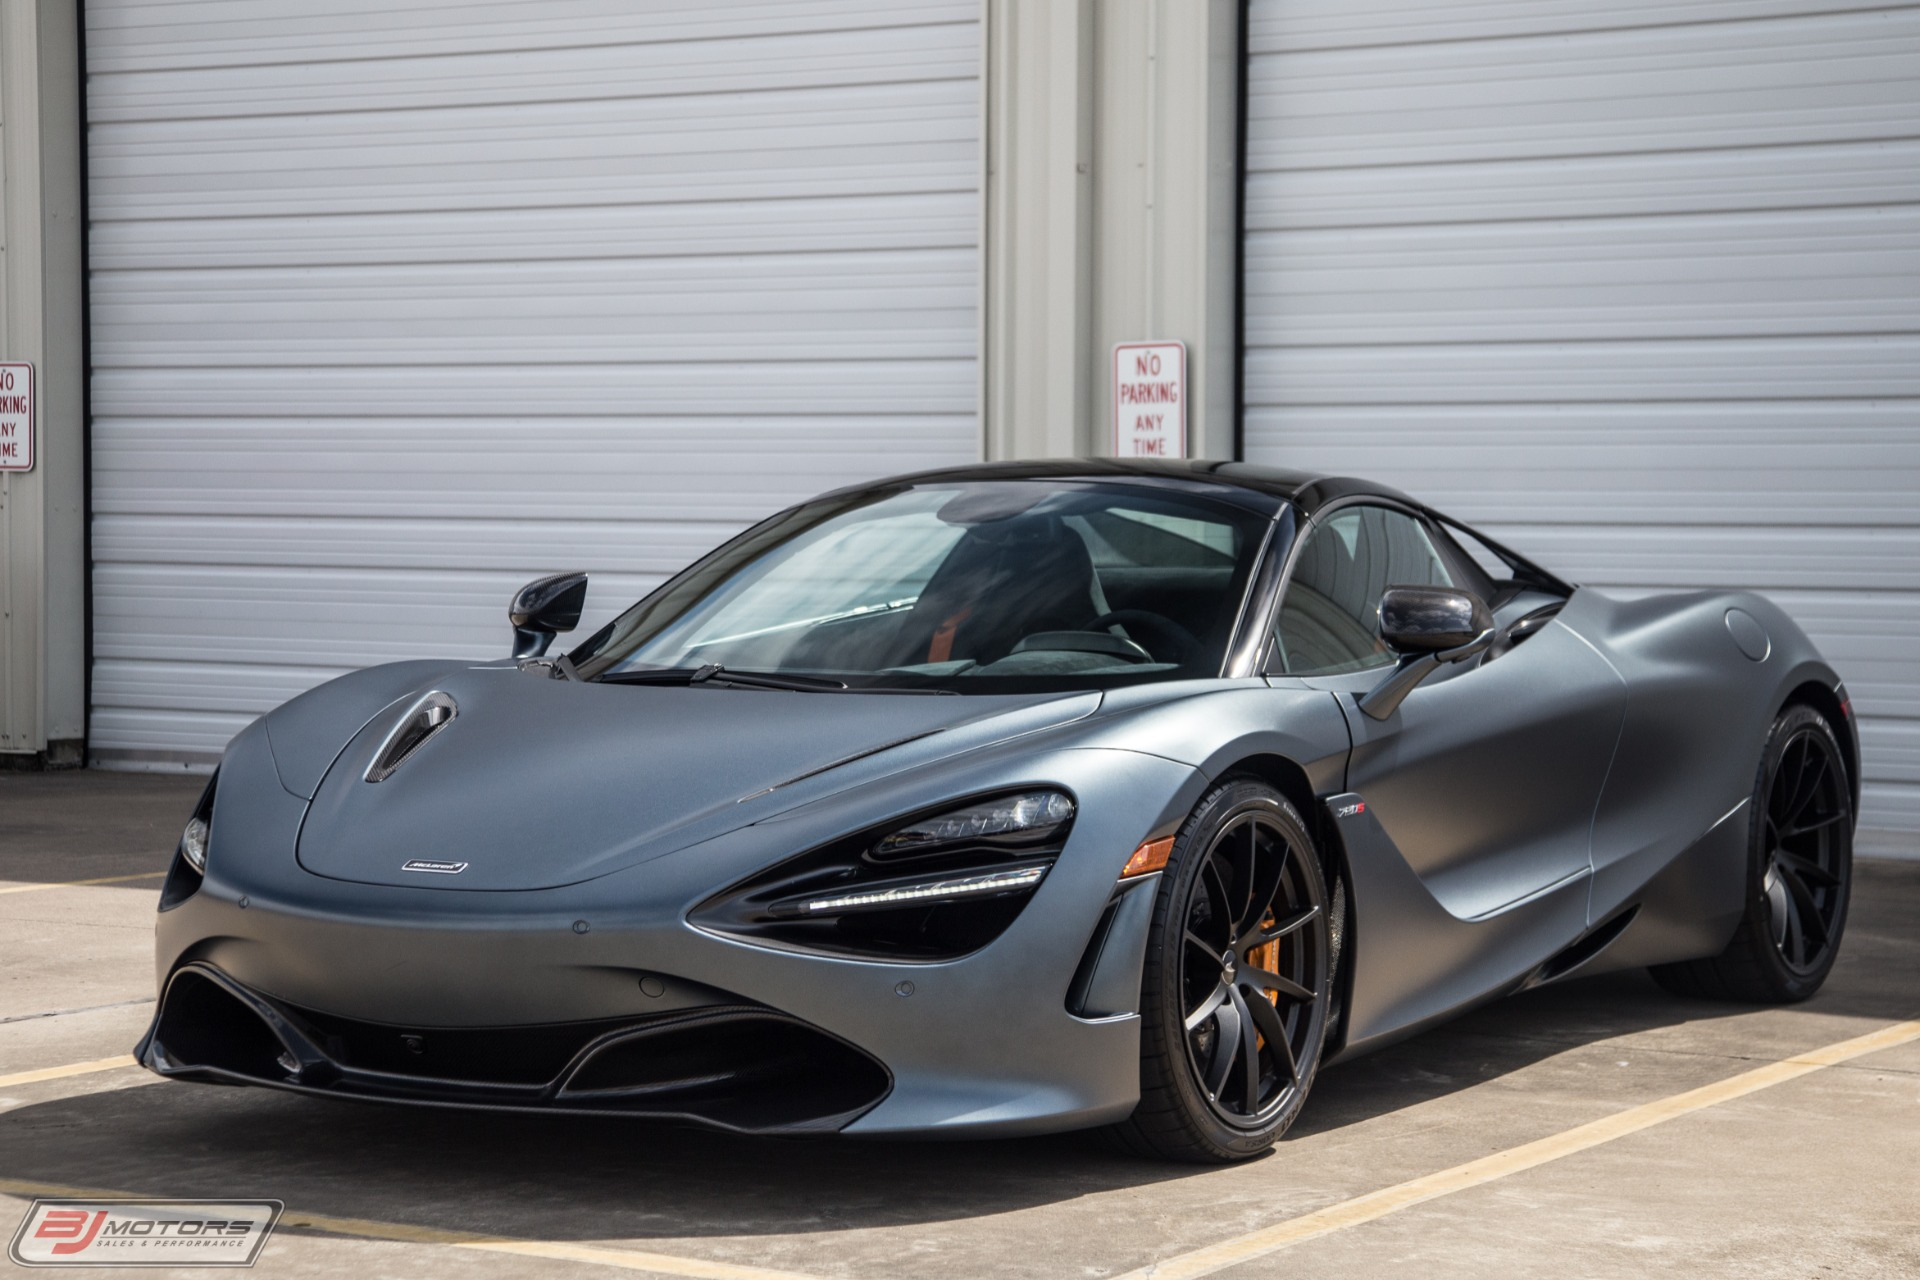 41 The 2020 Mclaren 720s Spider First Drive